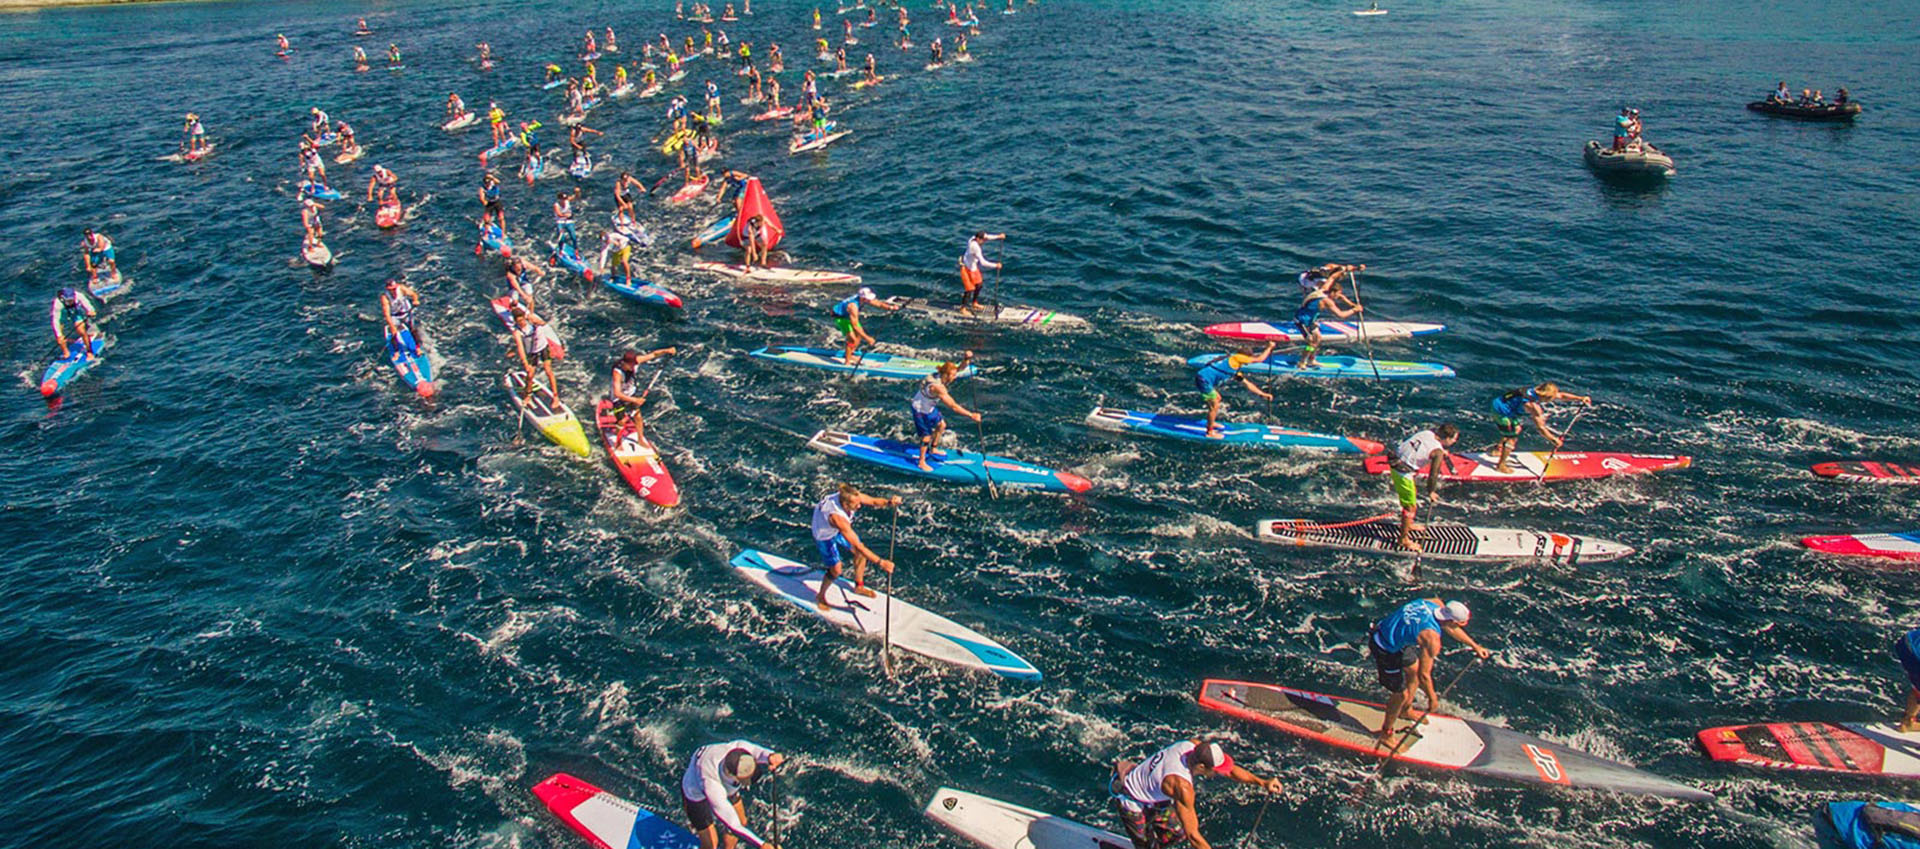 paddle-boarding-drone-photo-banner